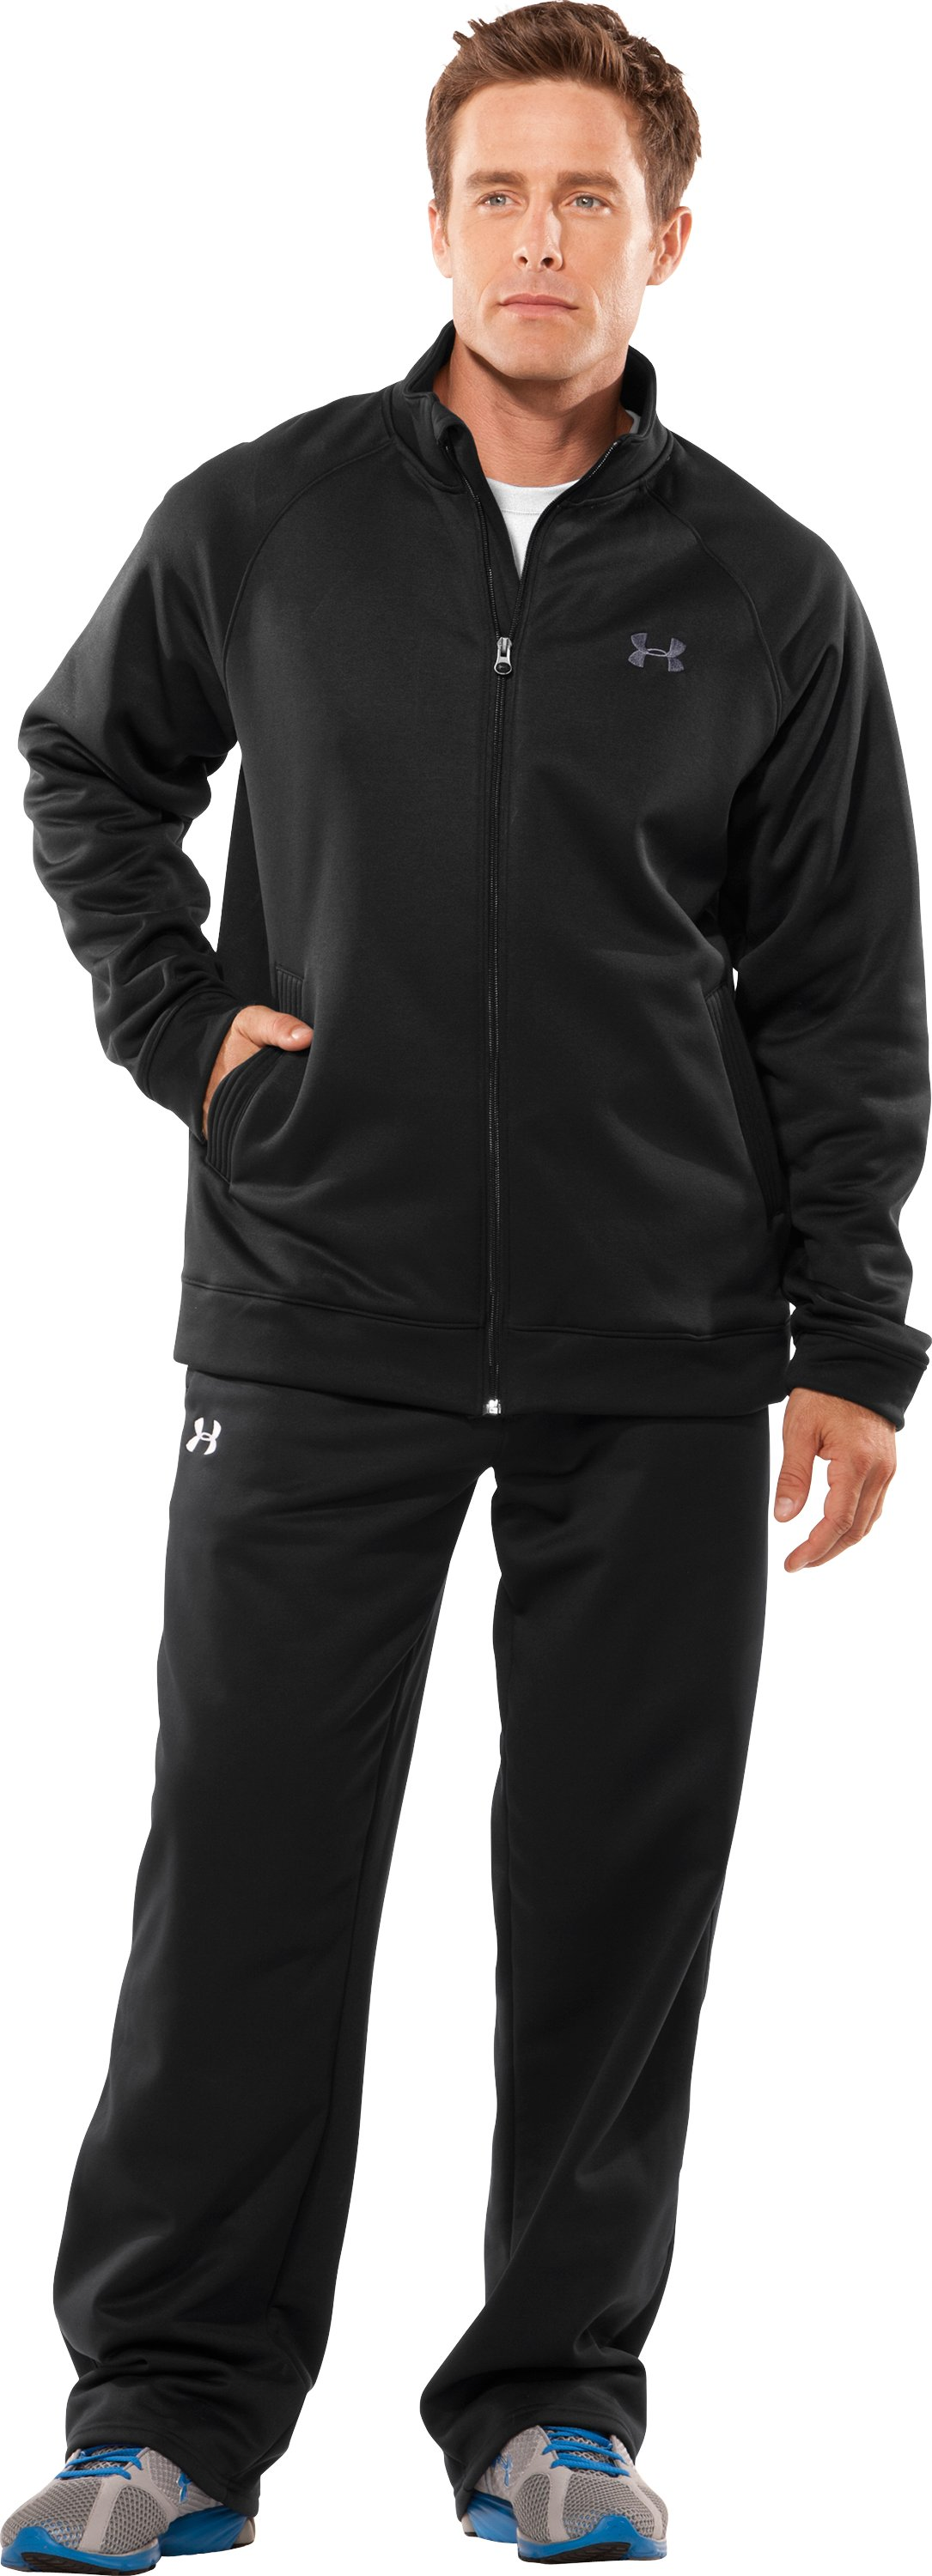 Men's Armour® Fleece Full Zip Jacket, Black , zoomed image